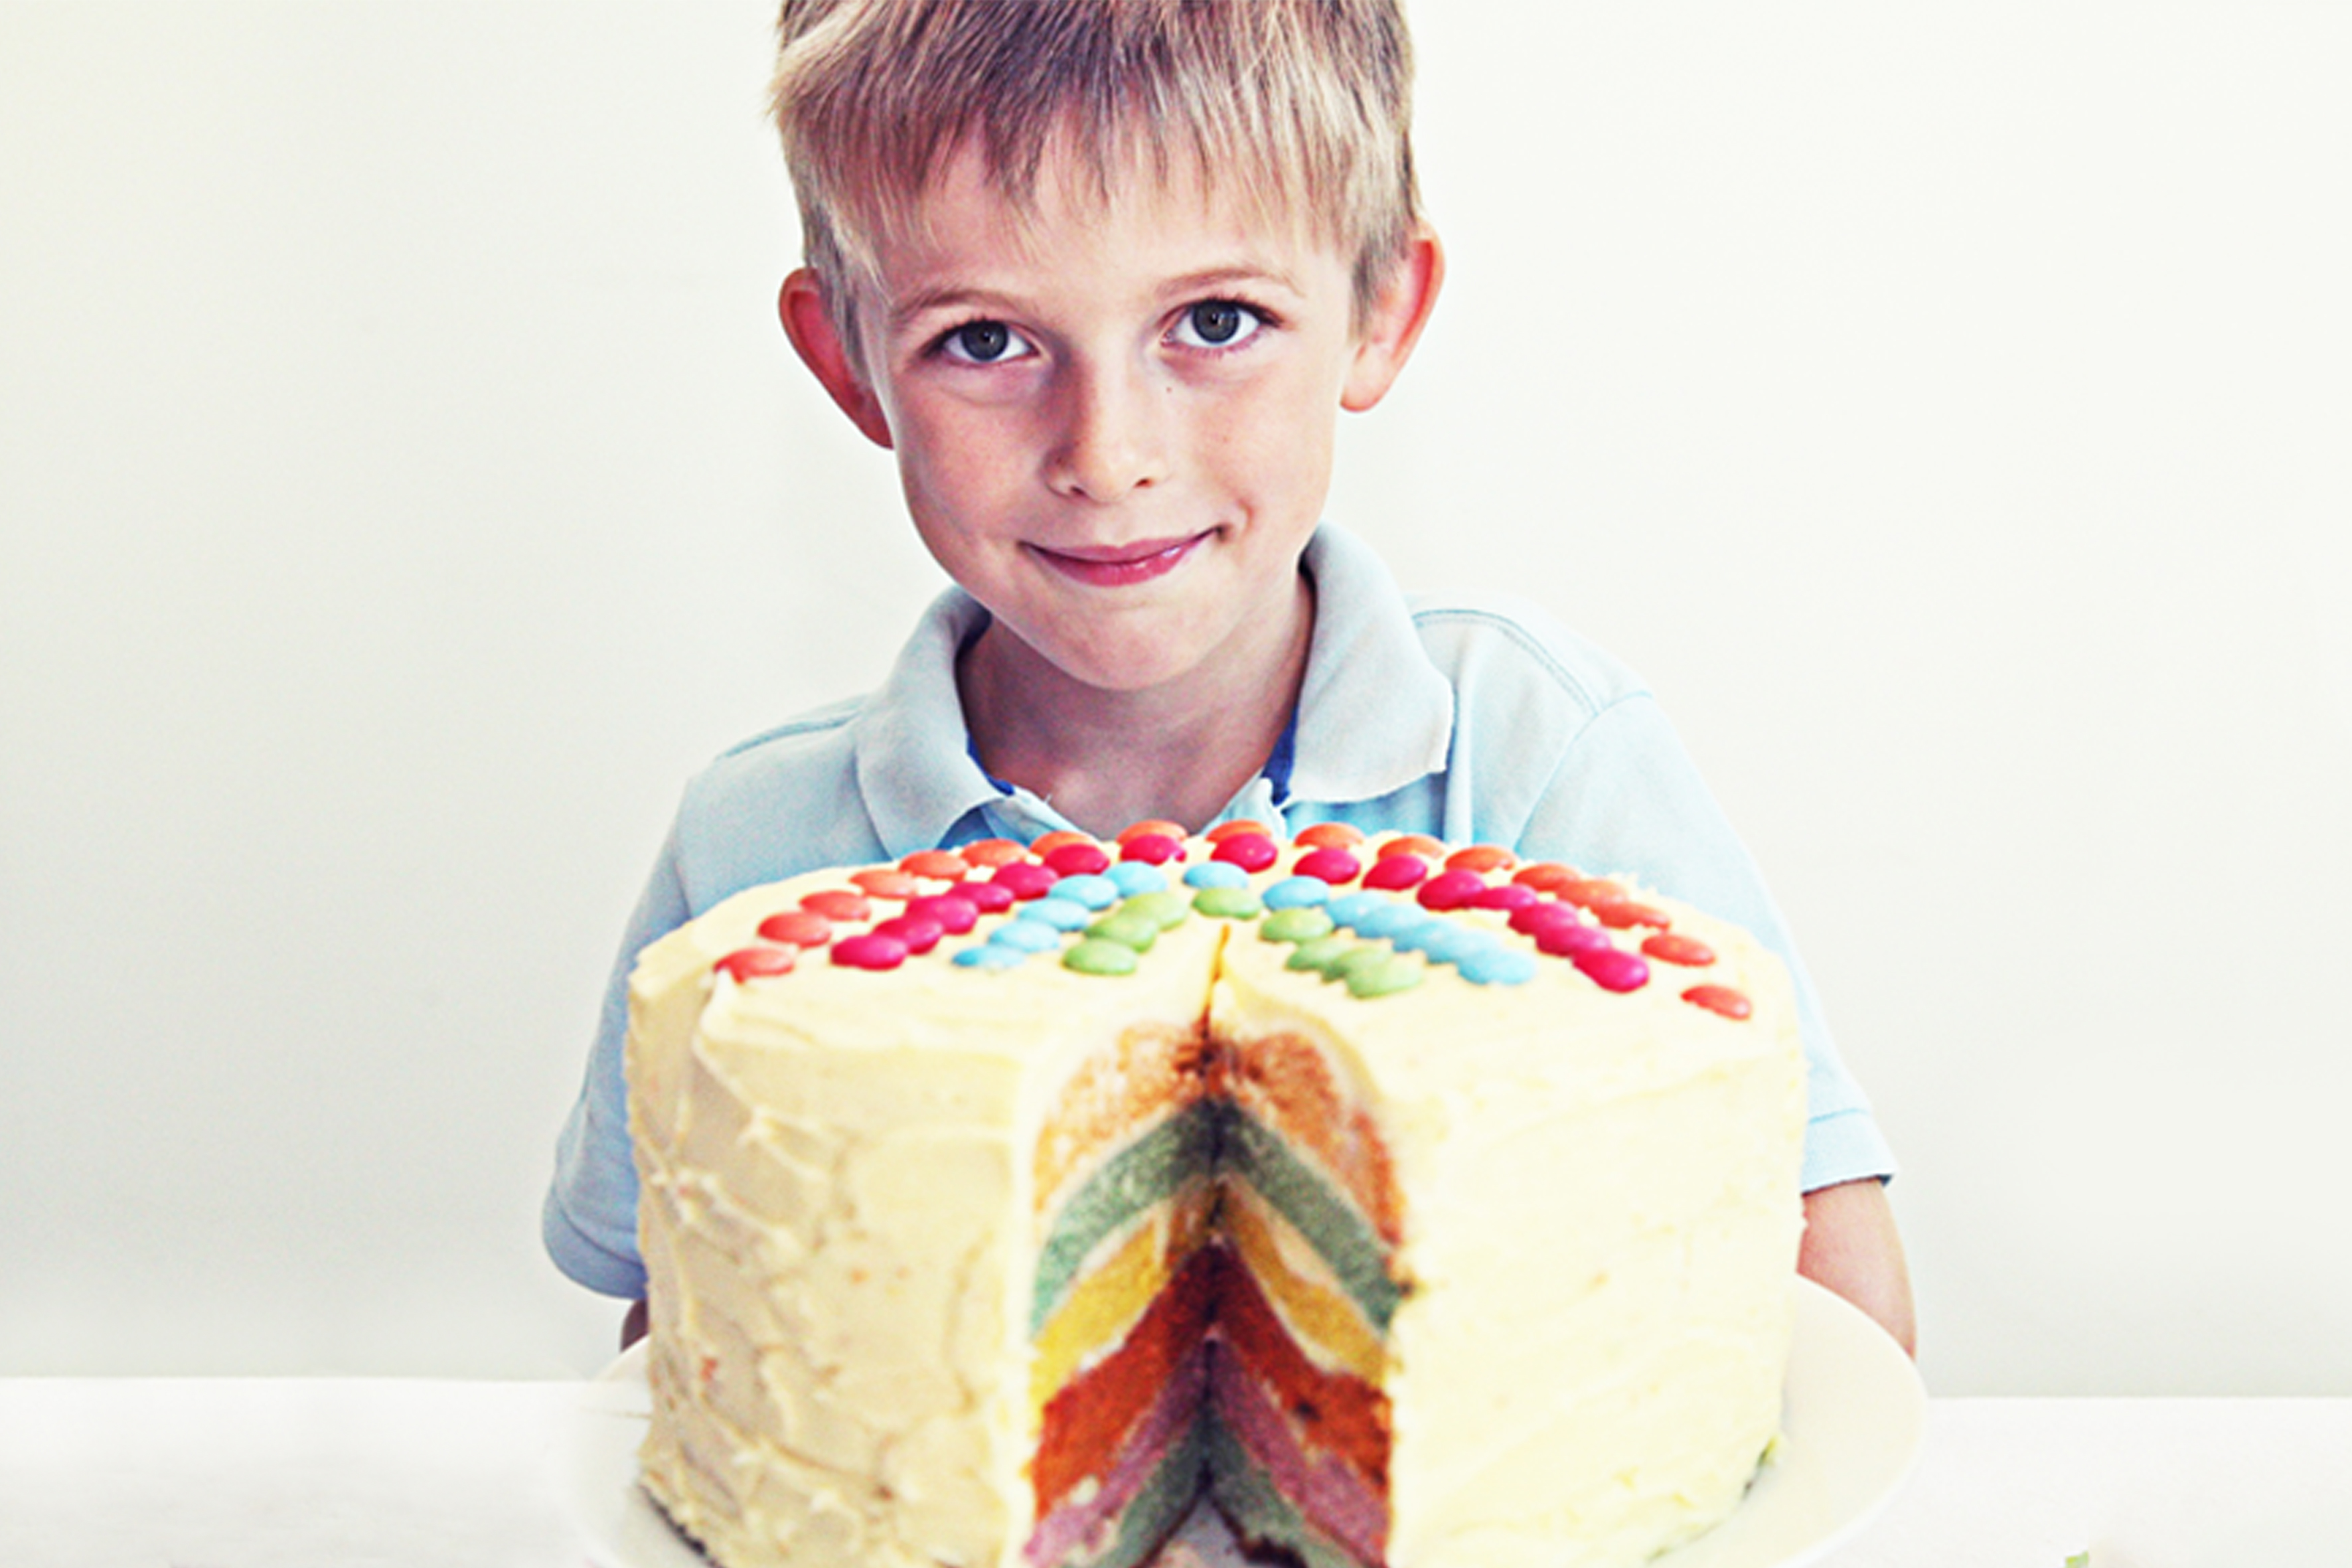 Join us for the Great Rainbow Bake